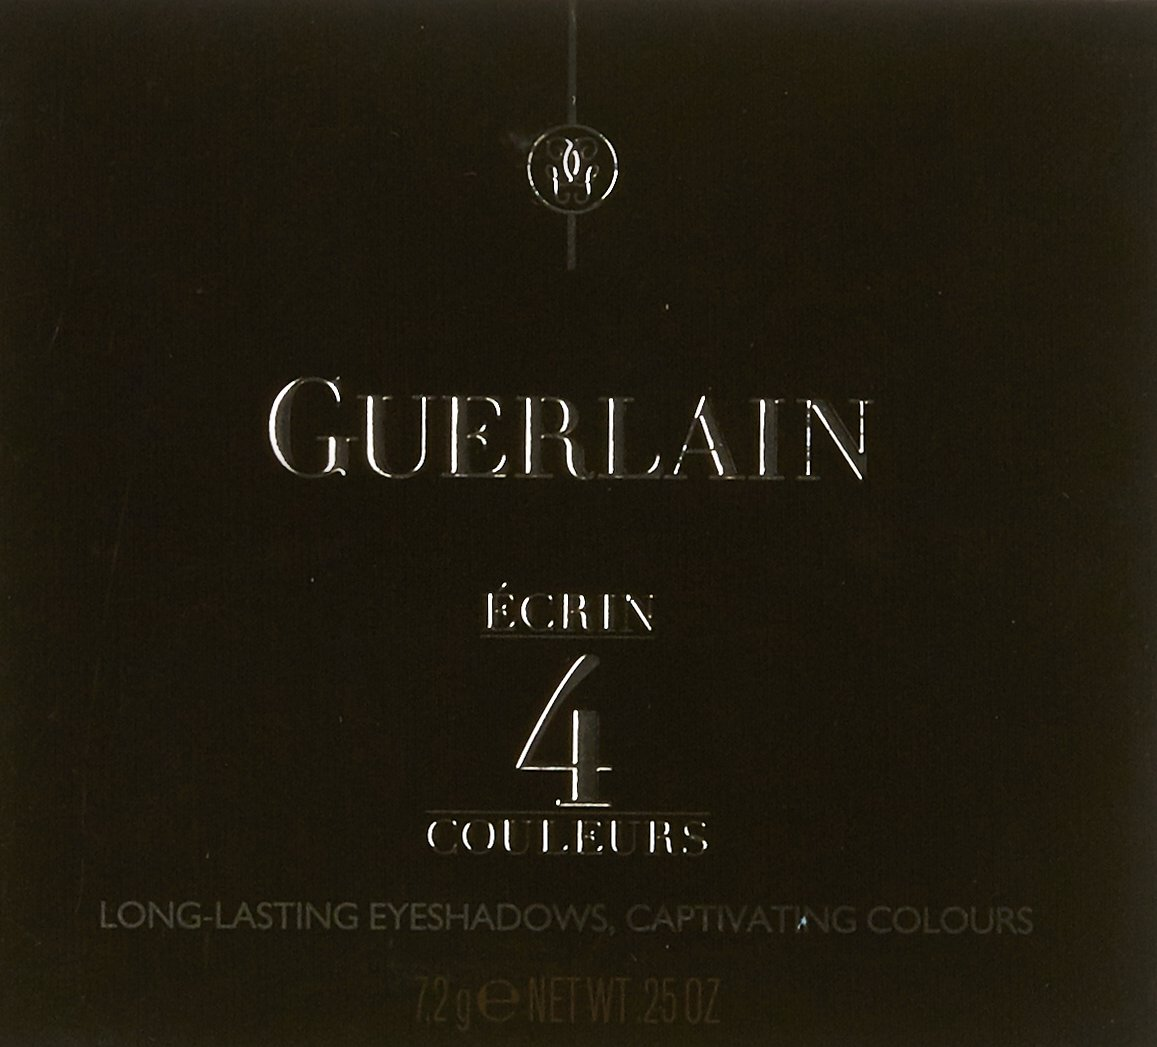 Guerlain Ecrin 4 Couleurs Eye Shadow, Palette 03 Les Verts, 0.25 Ounce